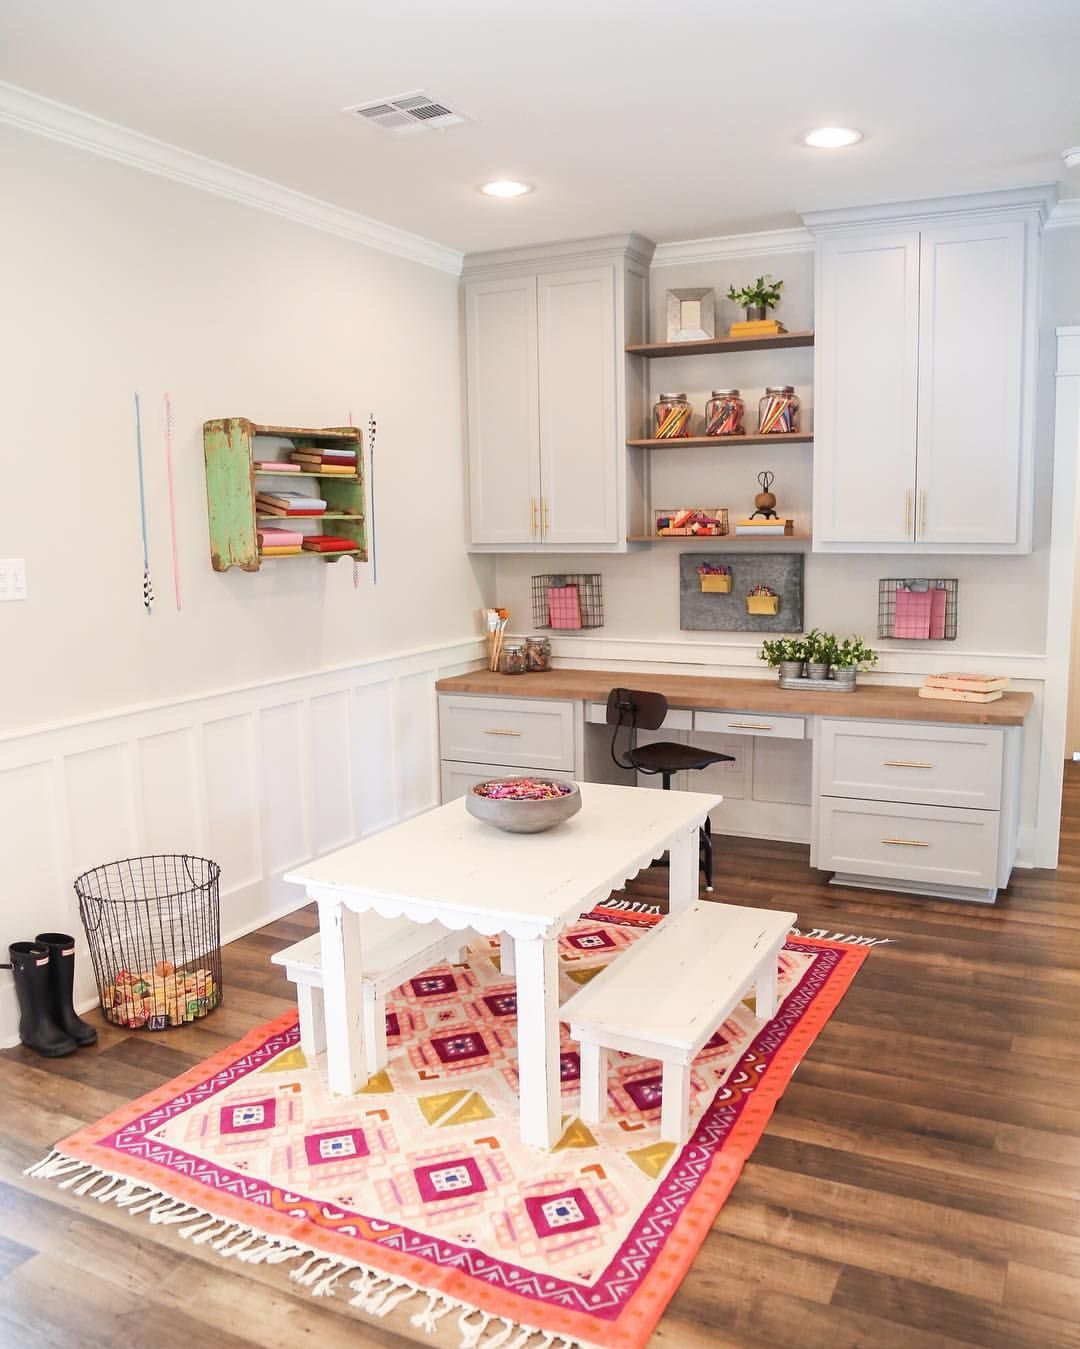 Who Loved This Sweet Playroom From Last Week's Episode? Don